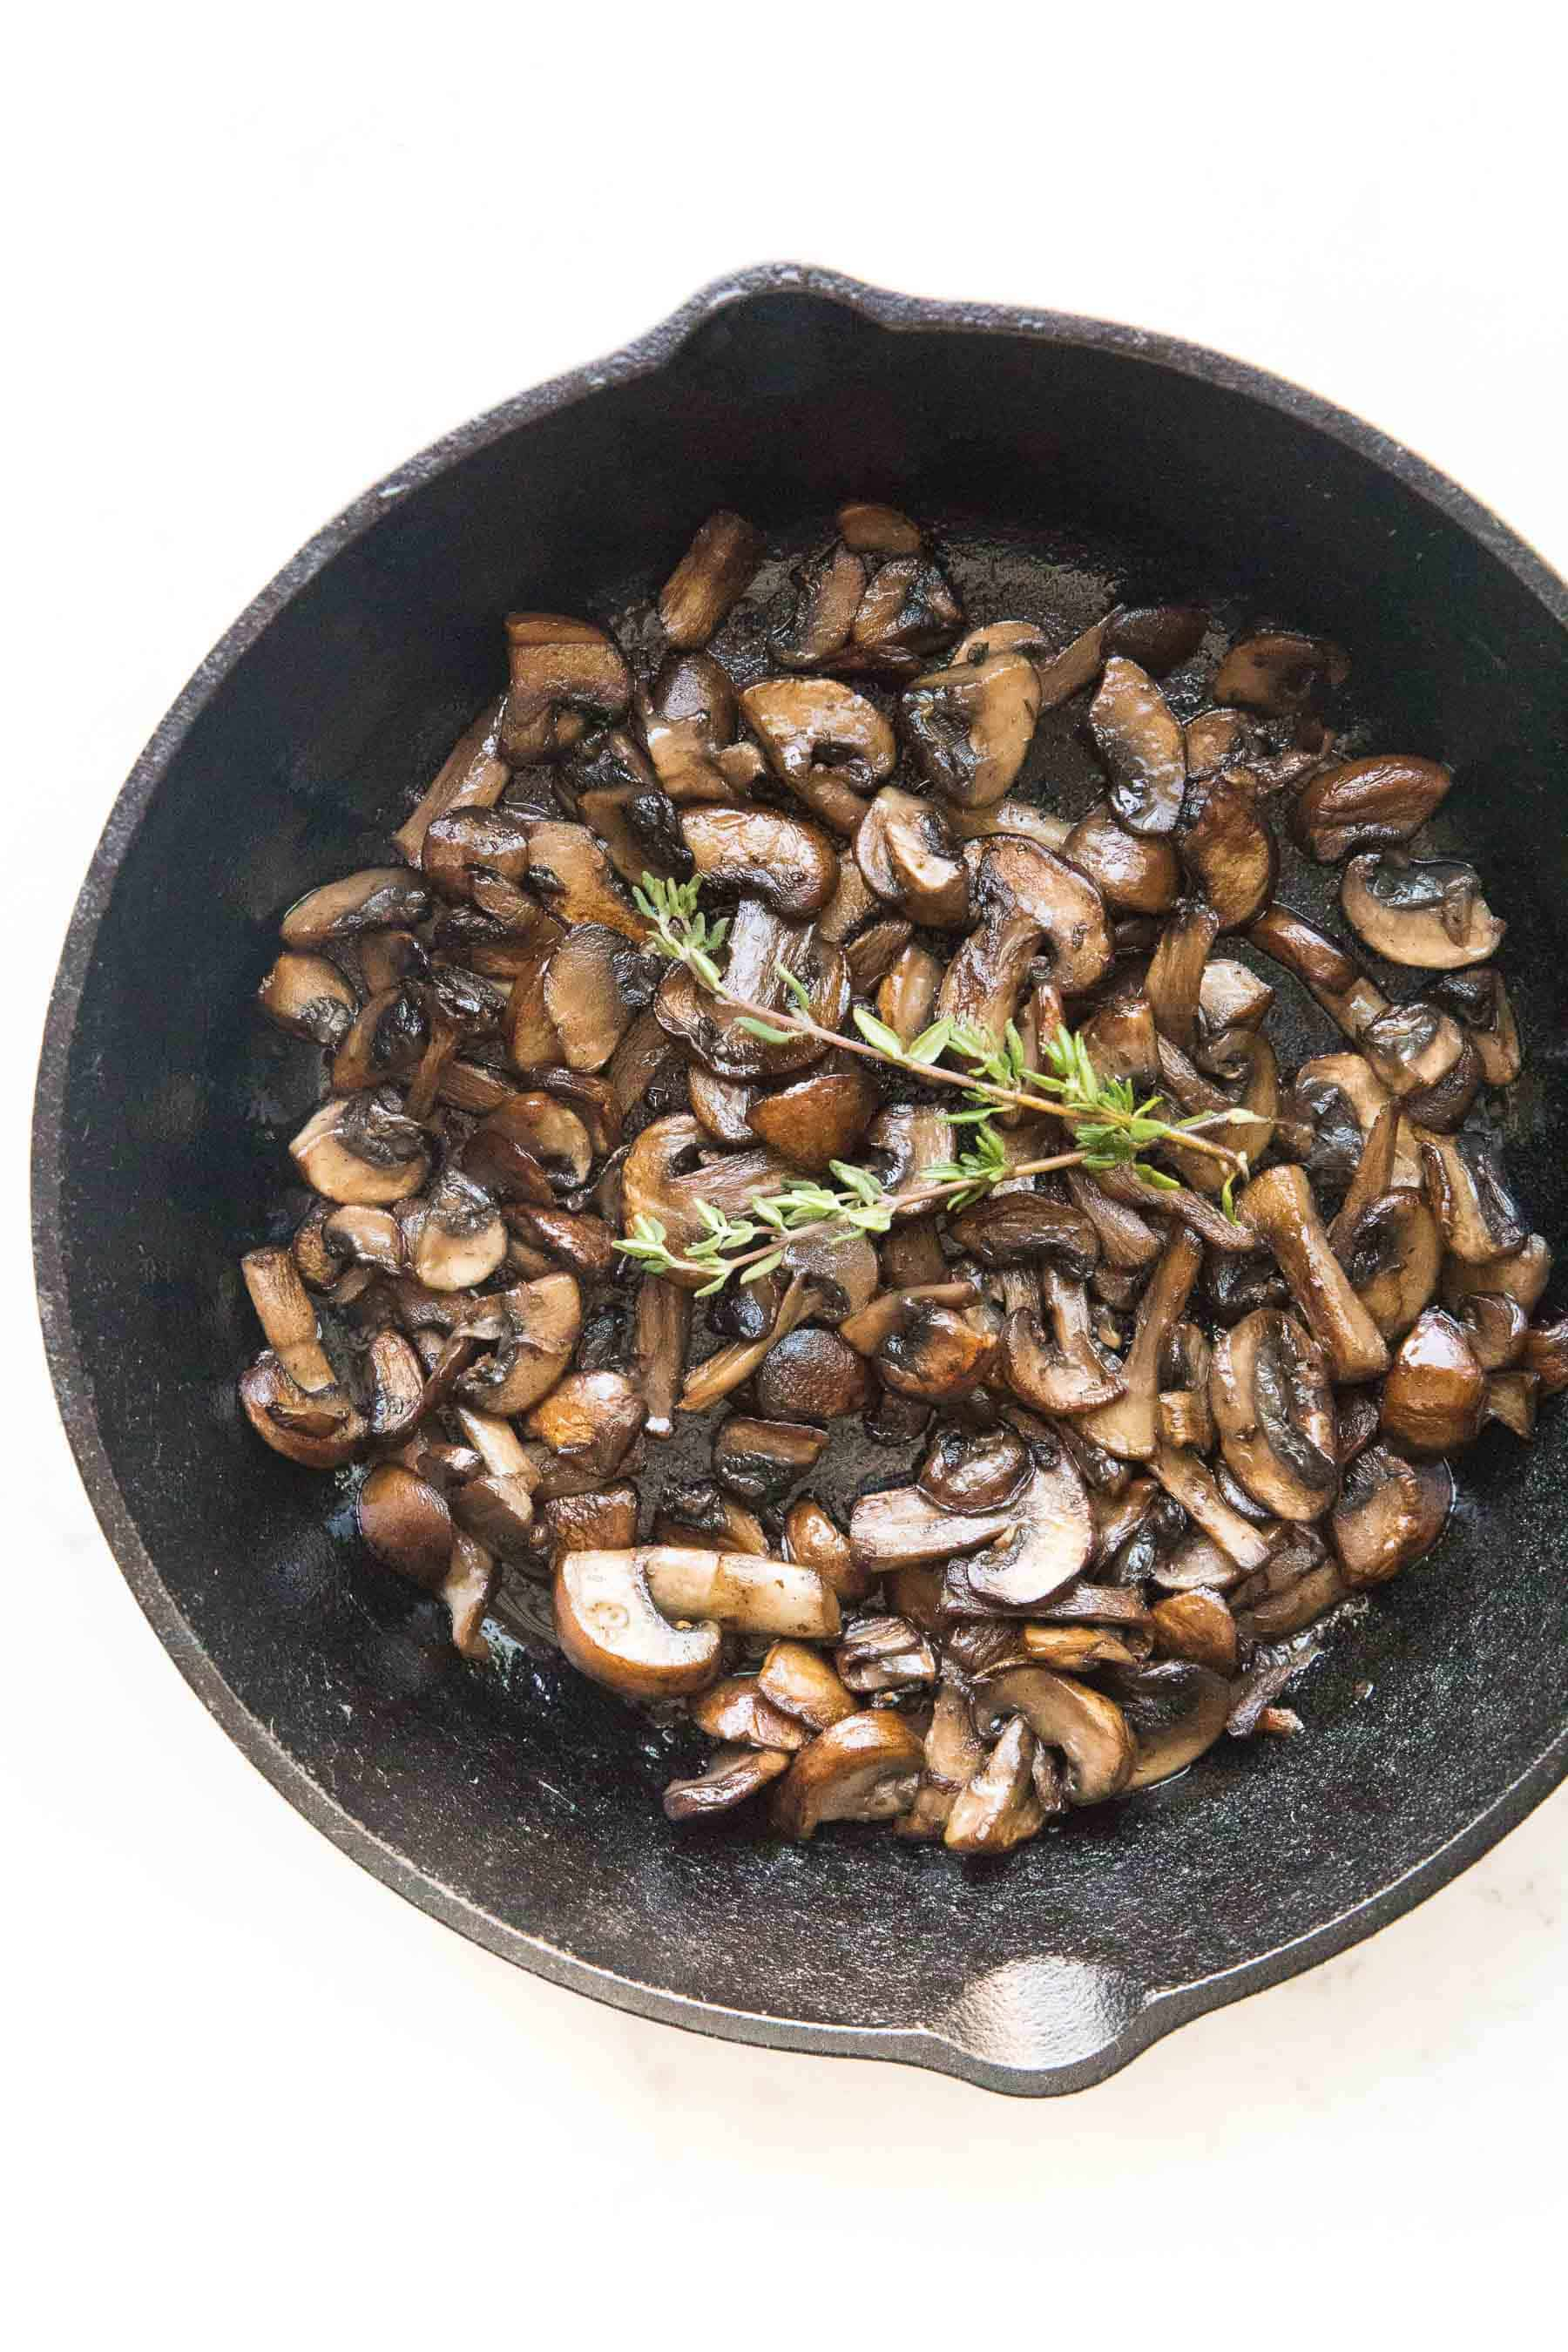 sauteed mushrooms in a cast iron skillet